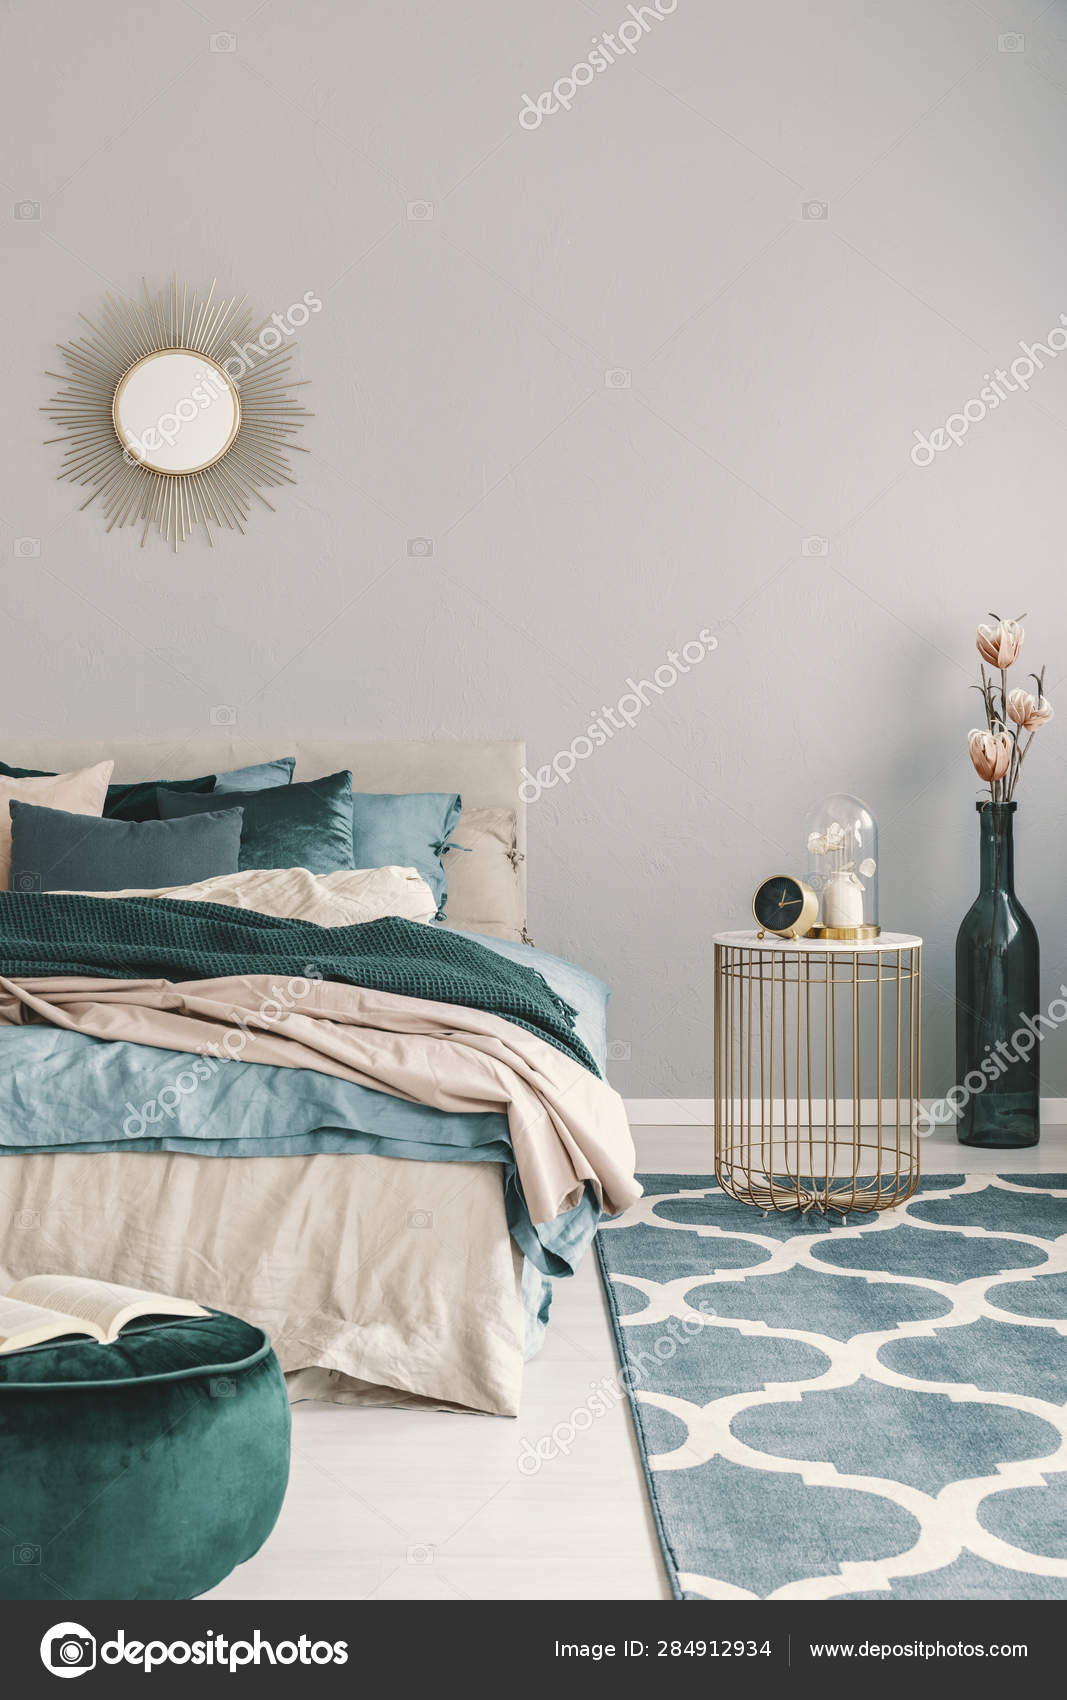 Flowers In Stylish Bottle Like Vase Next To Trendy Nightstand With Clock In Beautiful Bedroom Interior With Beige And Emerald Green Bedding Stock Photo C Photographee Eu 284912934